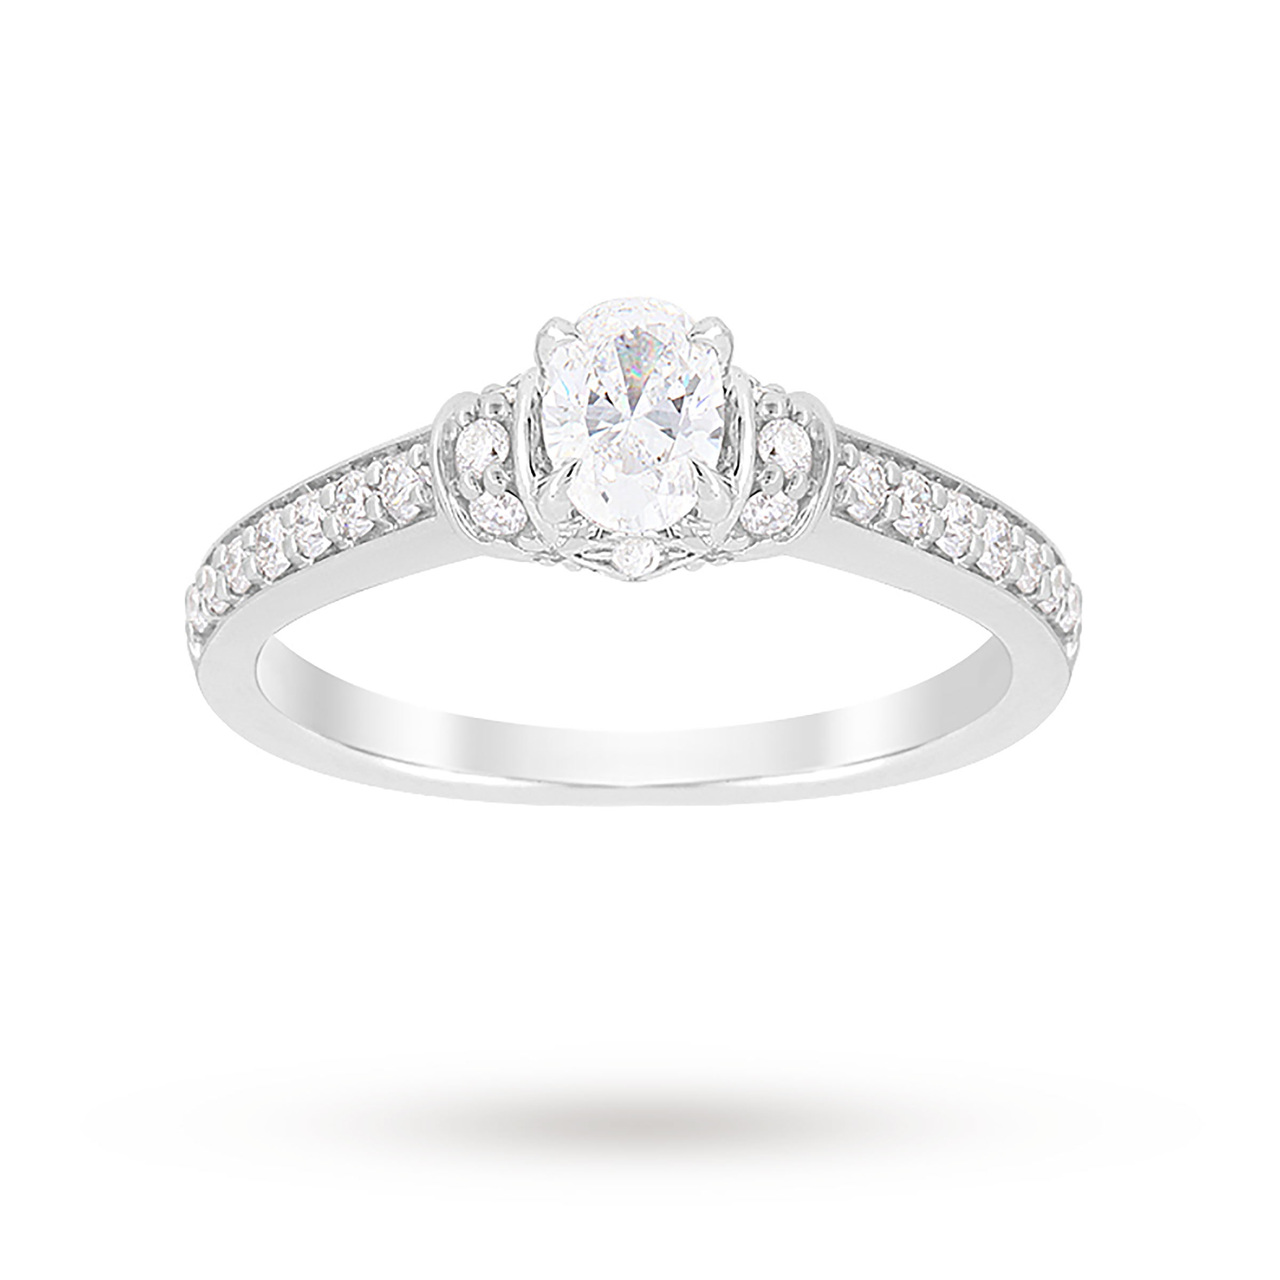 Jenny Packham Oval Cut 0.85 Carat Total Weight Diamond Art Deco Style Ring in Platinum